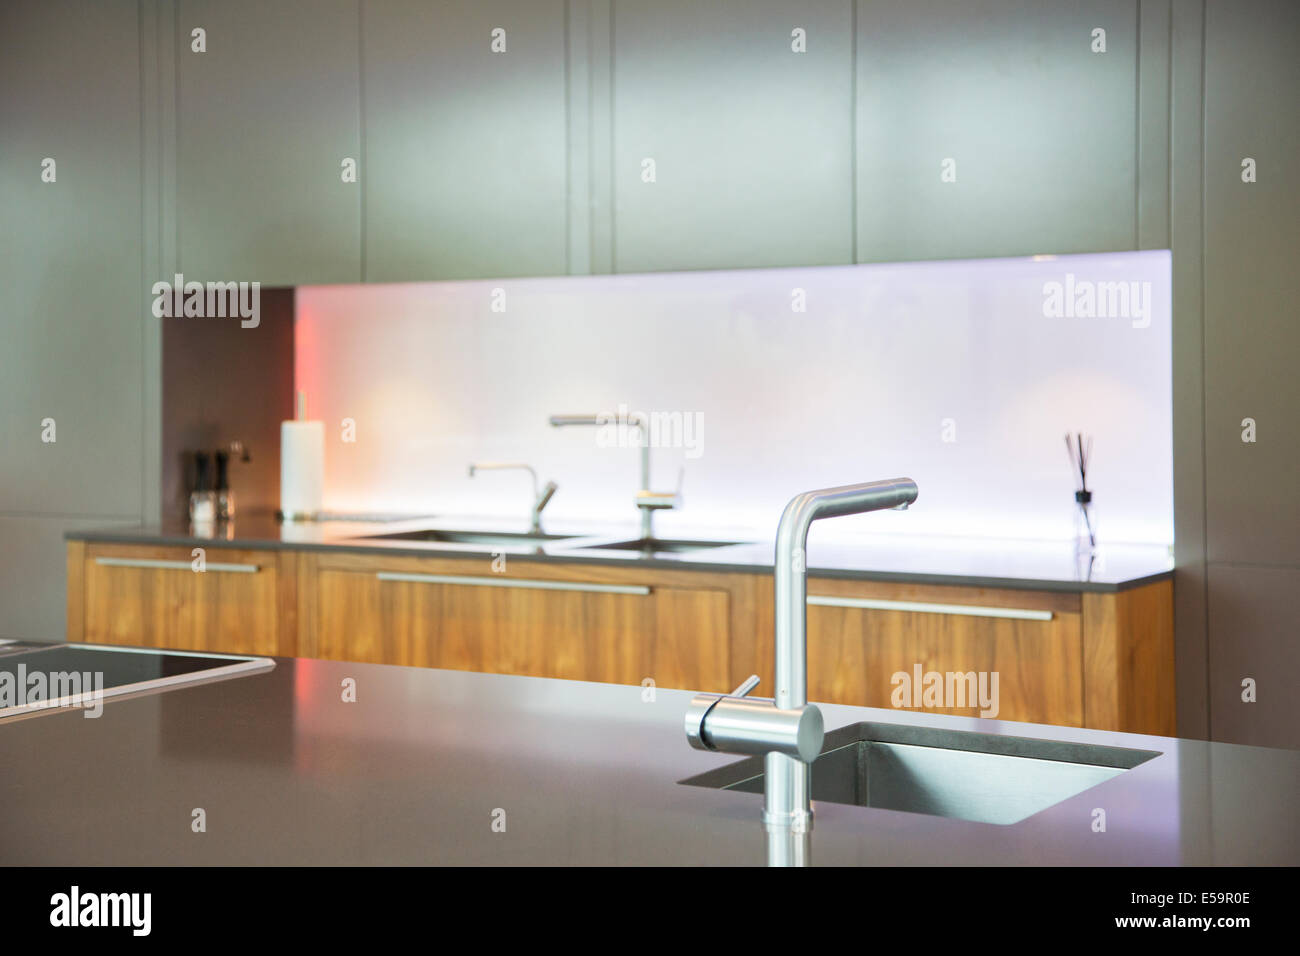 Sinks and faucets in modern kitchen - Stock Image